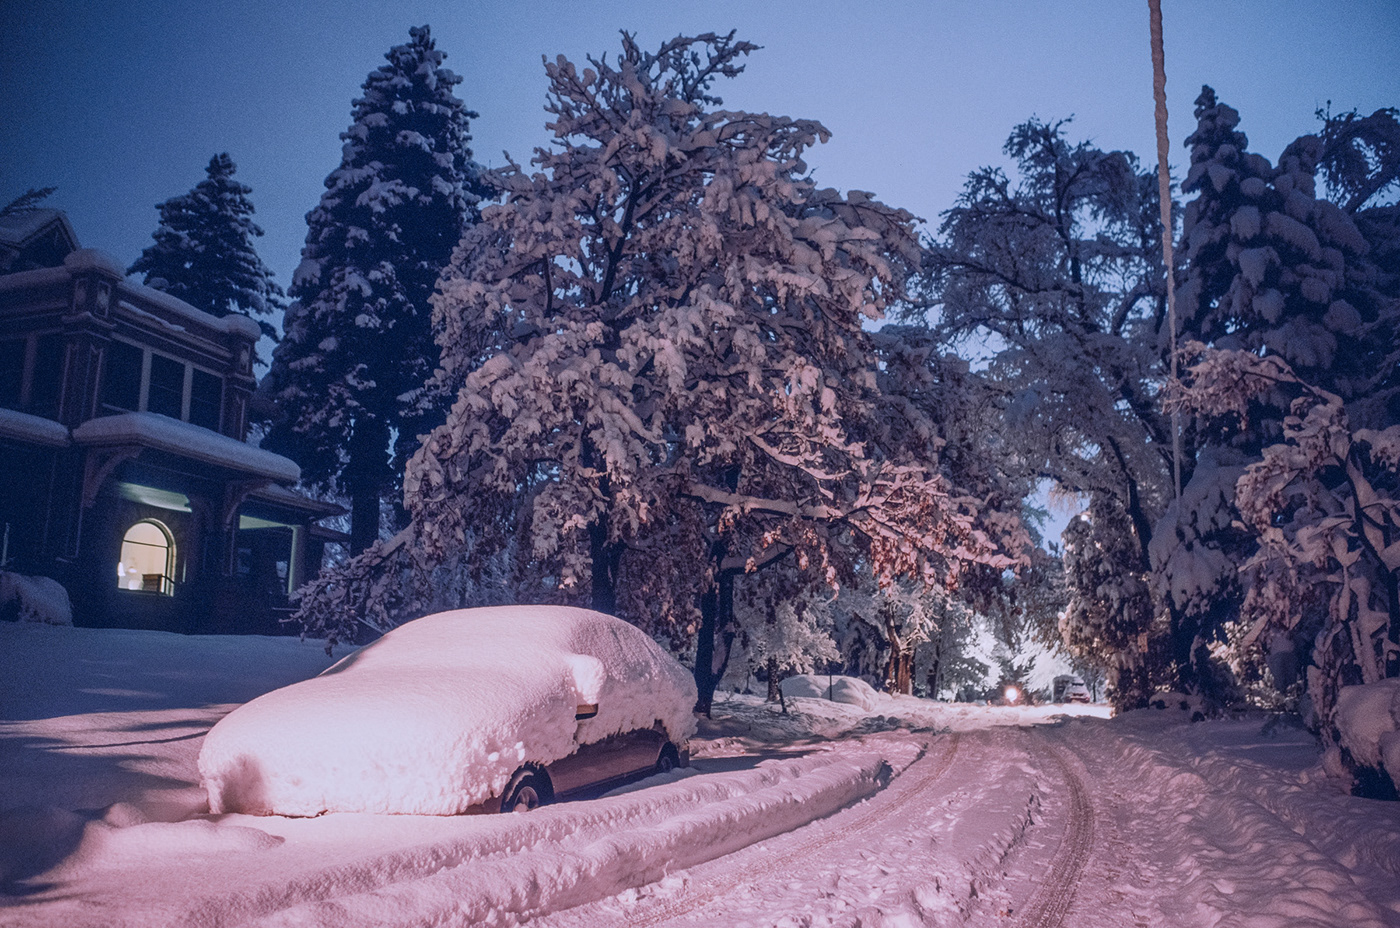 35mm Colorado colorful dreamy Film   landscape photography mountains new mexico pastel colors winter scene